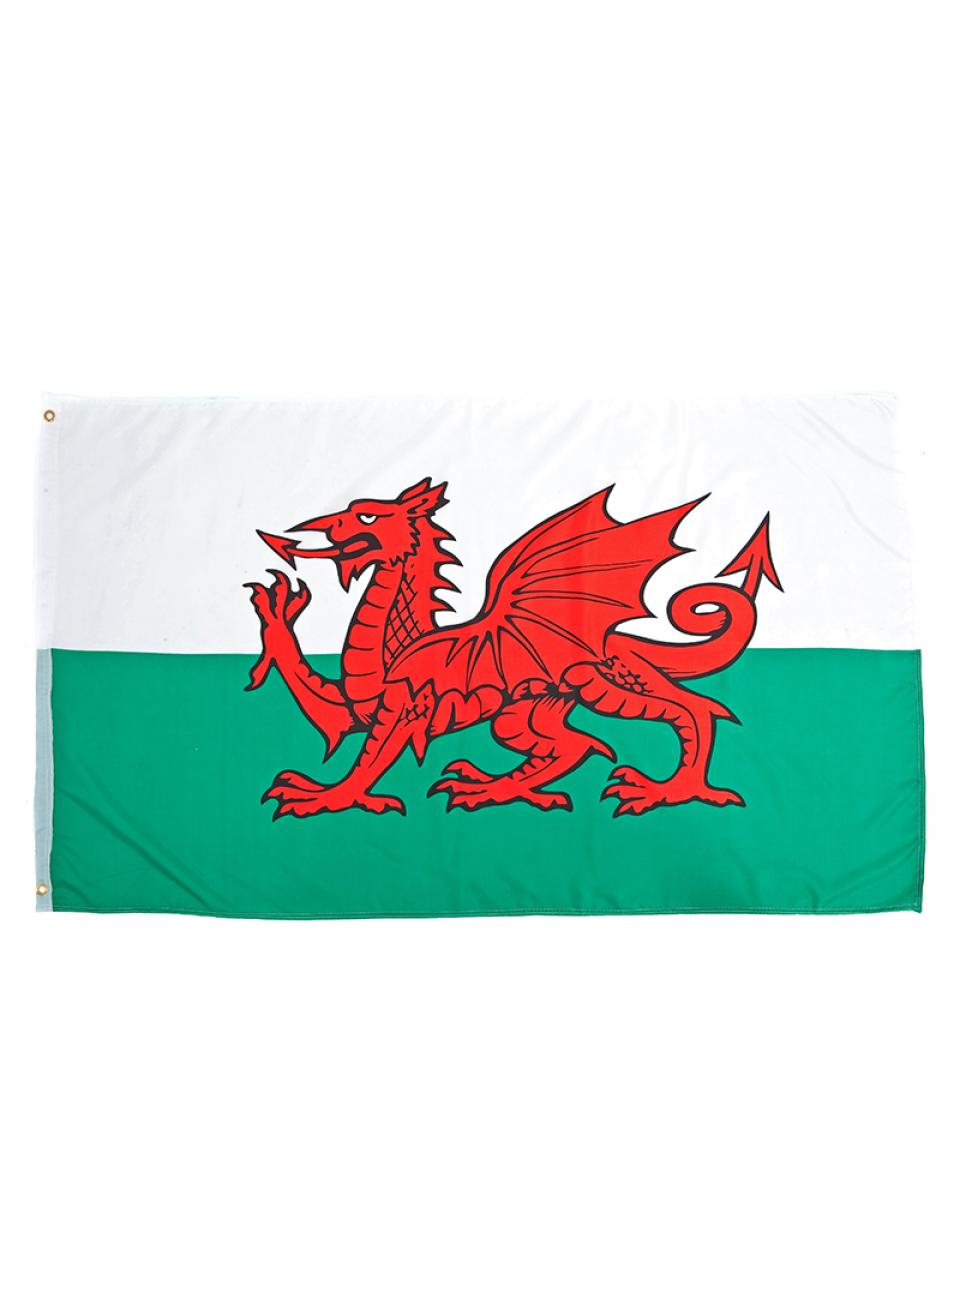 Welsh National Flag